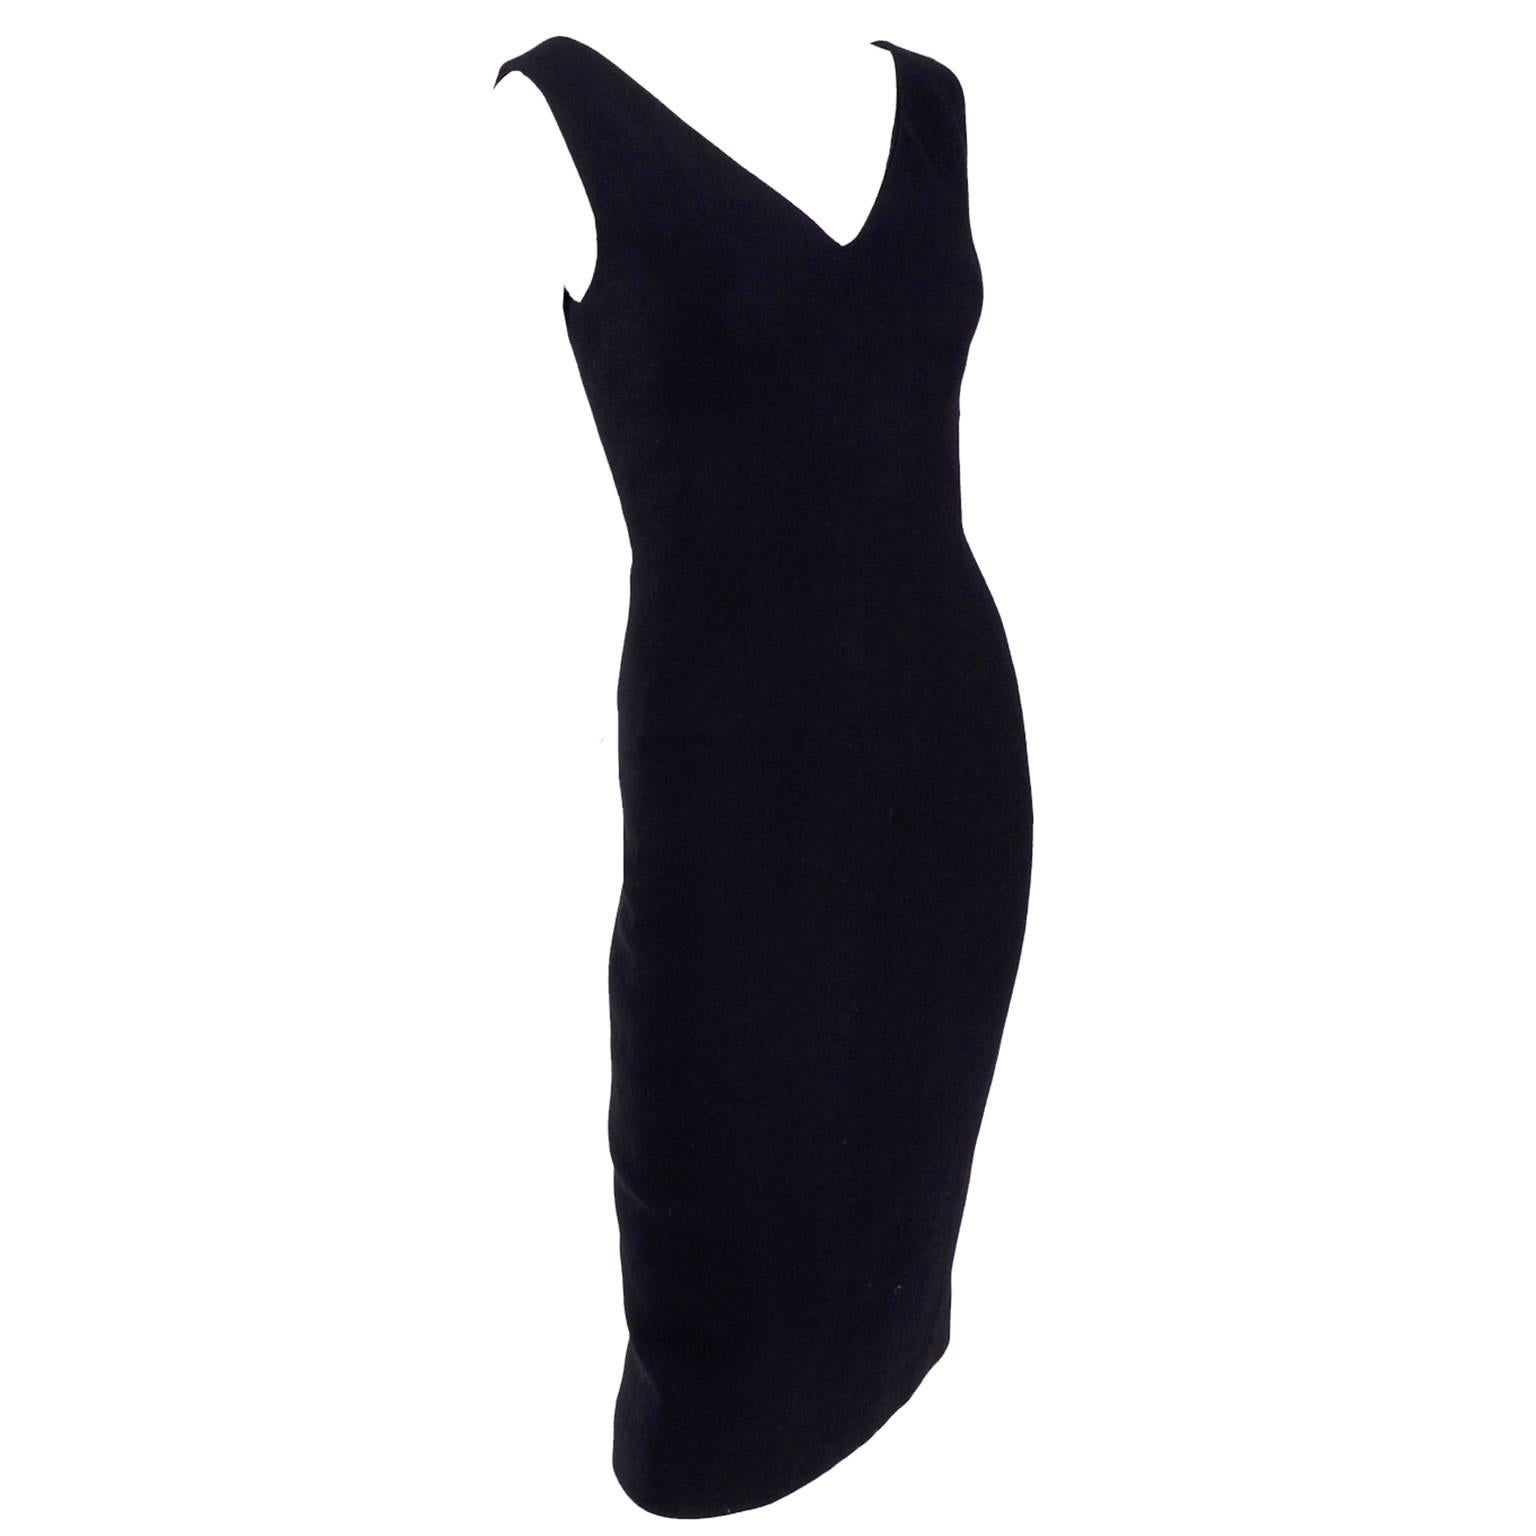 Dead Stock New W/ Tags Gianni Versace Couture Vintage Little Black Dress, 1995